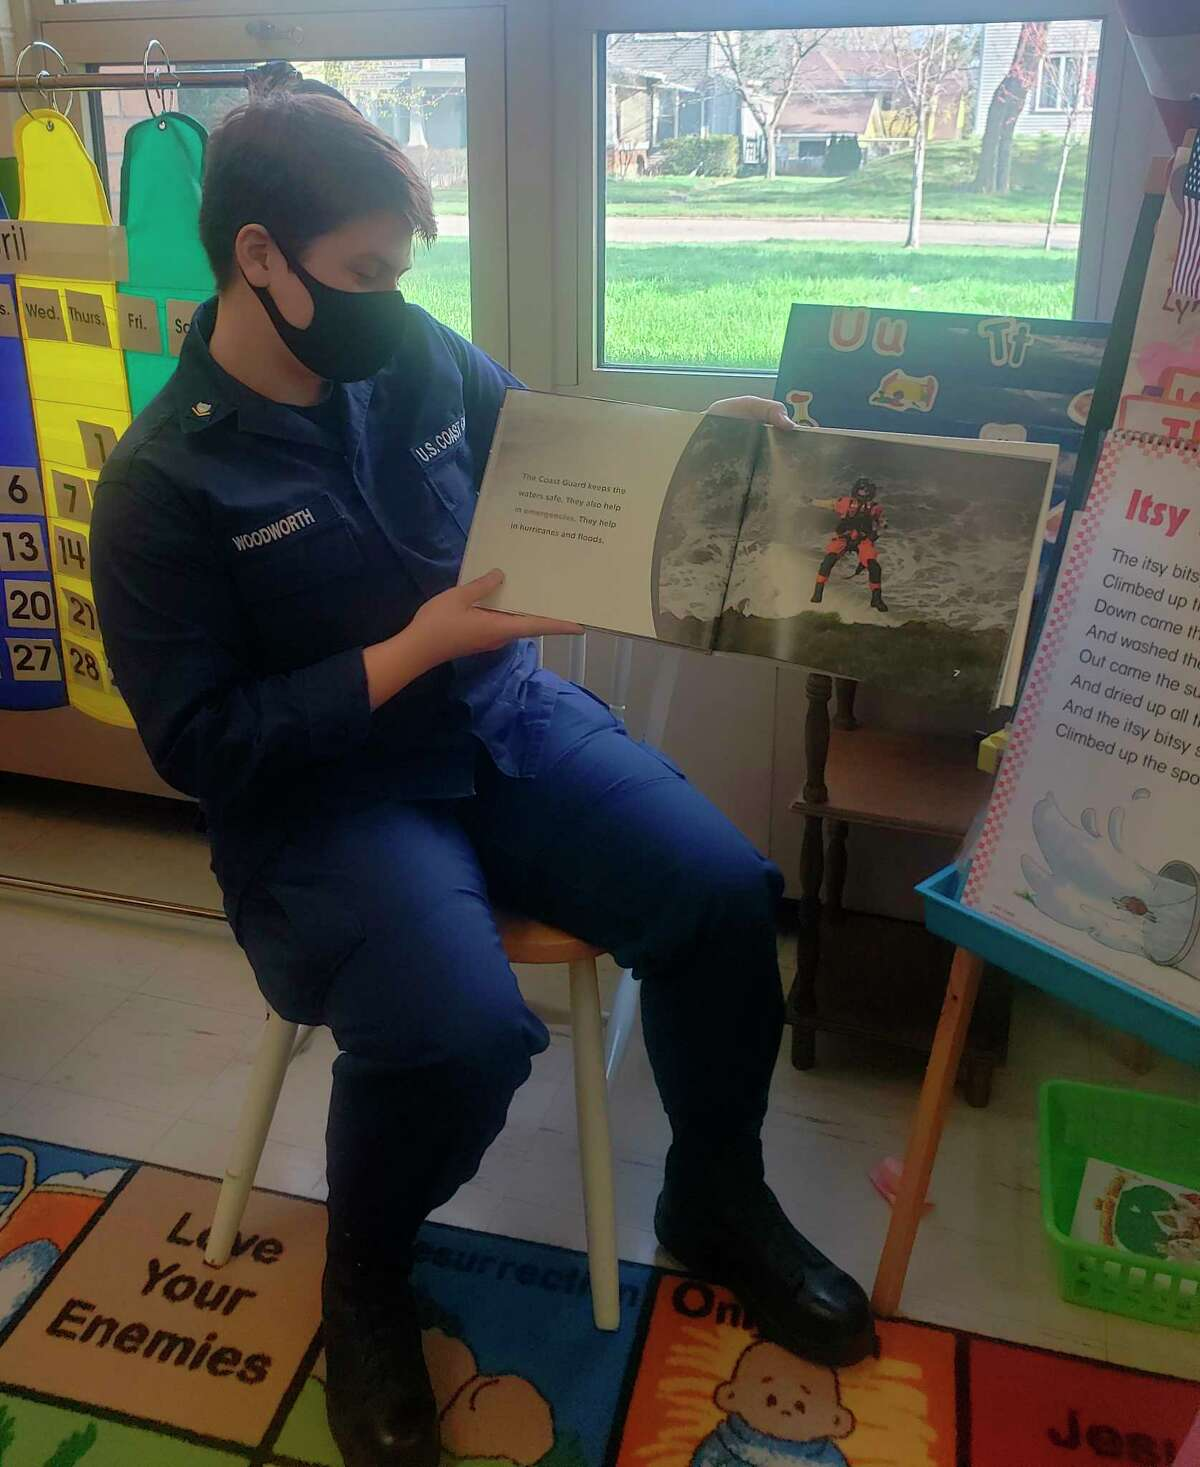 A member of the U.S. Coast Guard reads a book to preschool students at Trinity Lutheran School on Monday. (Courtesy photo)